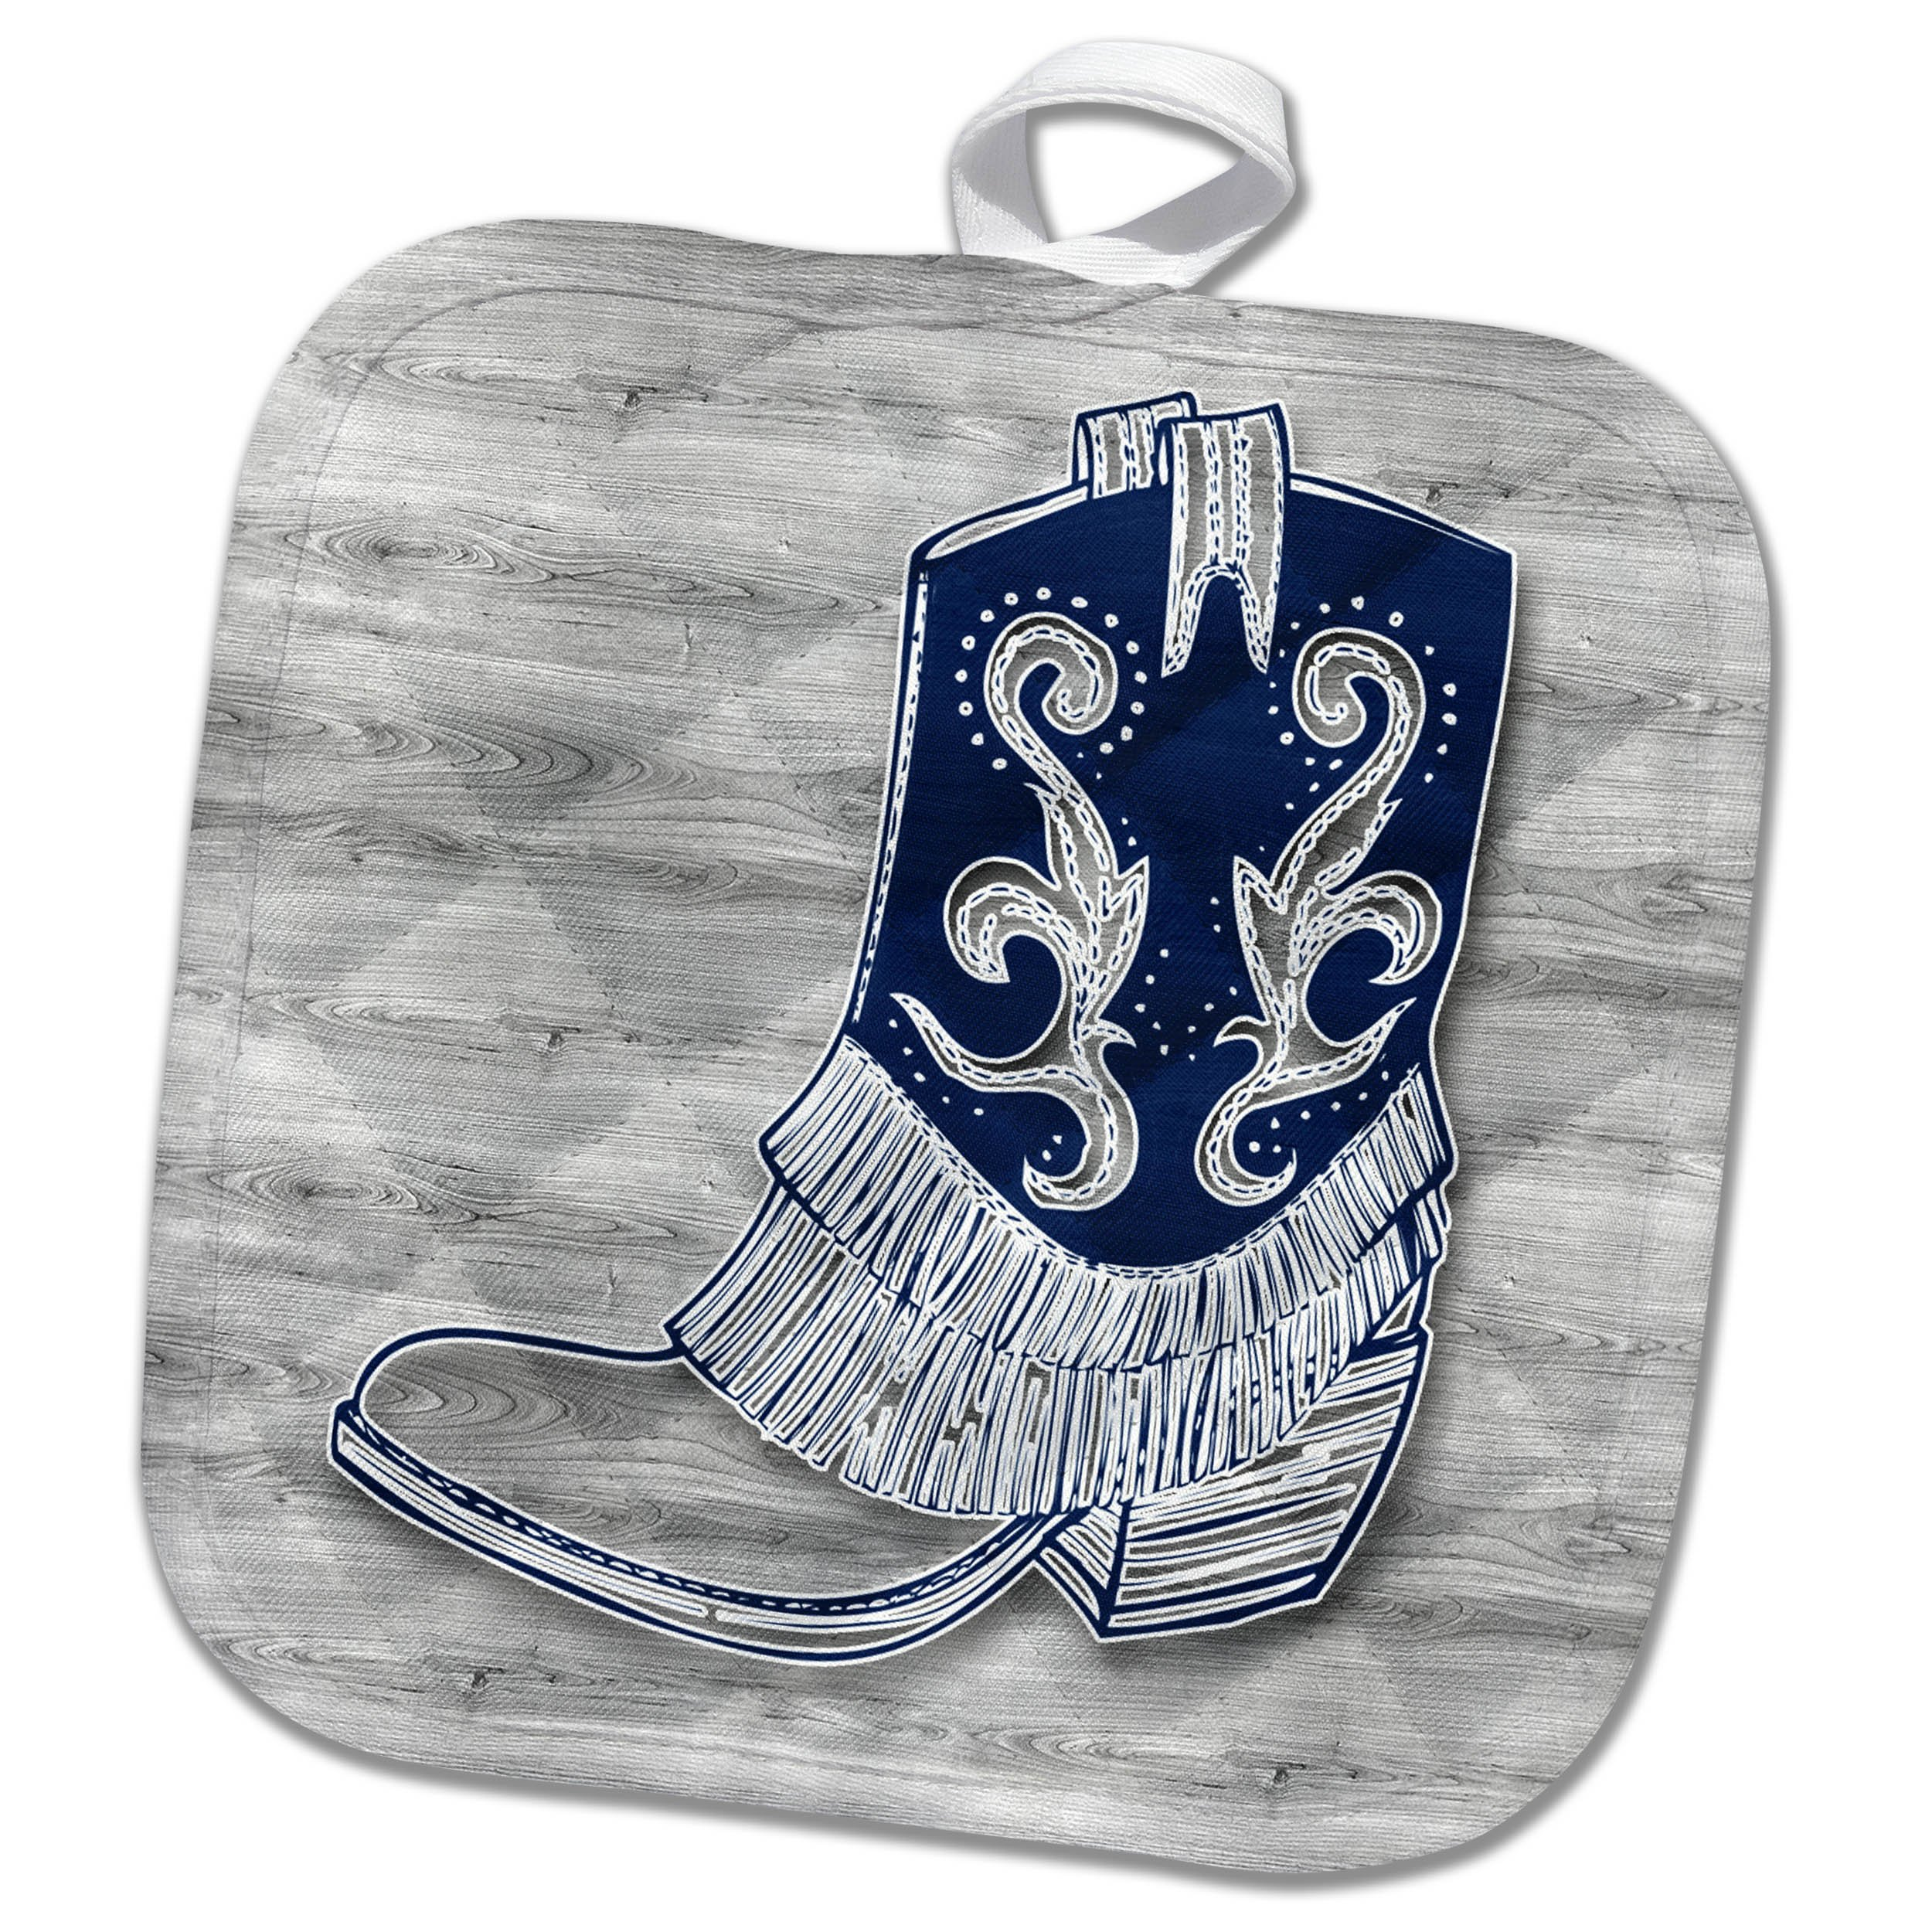 3dRose phl_264570_1 1 Pot Holder Cowboy Or Cowgirl Boot in Blue and Gray Wood Patterns Western Styling, 8 by 8''